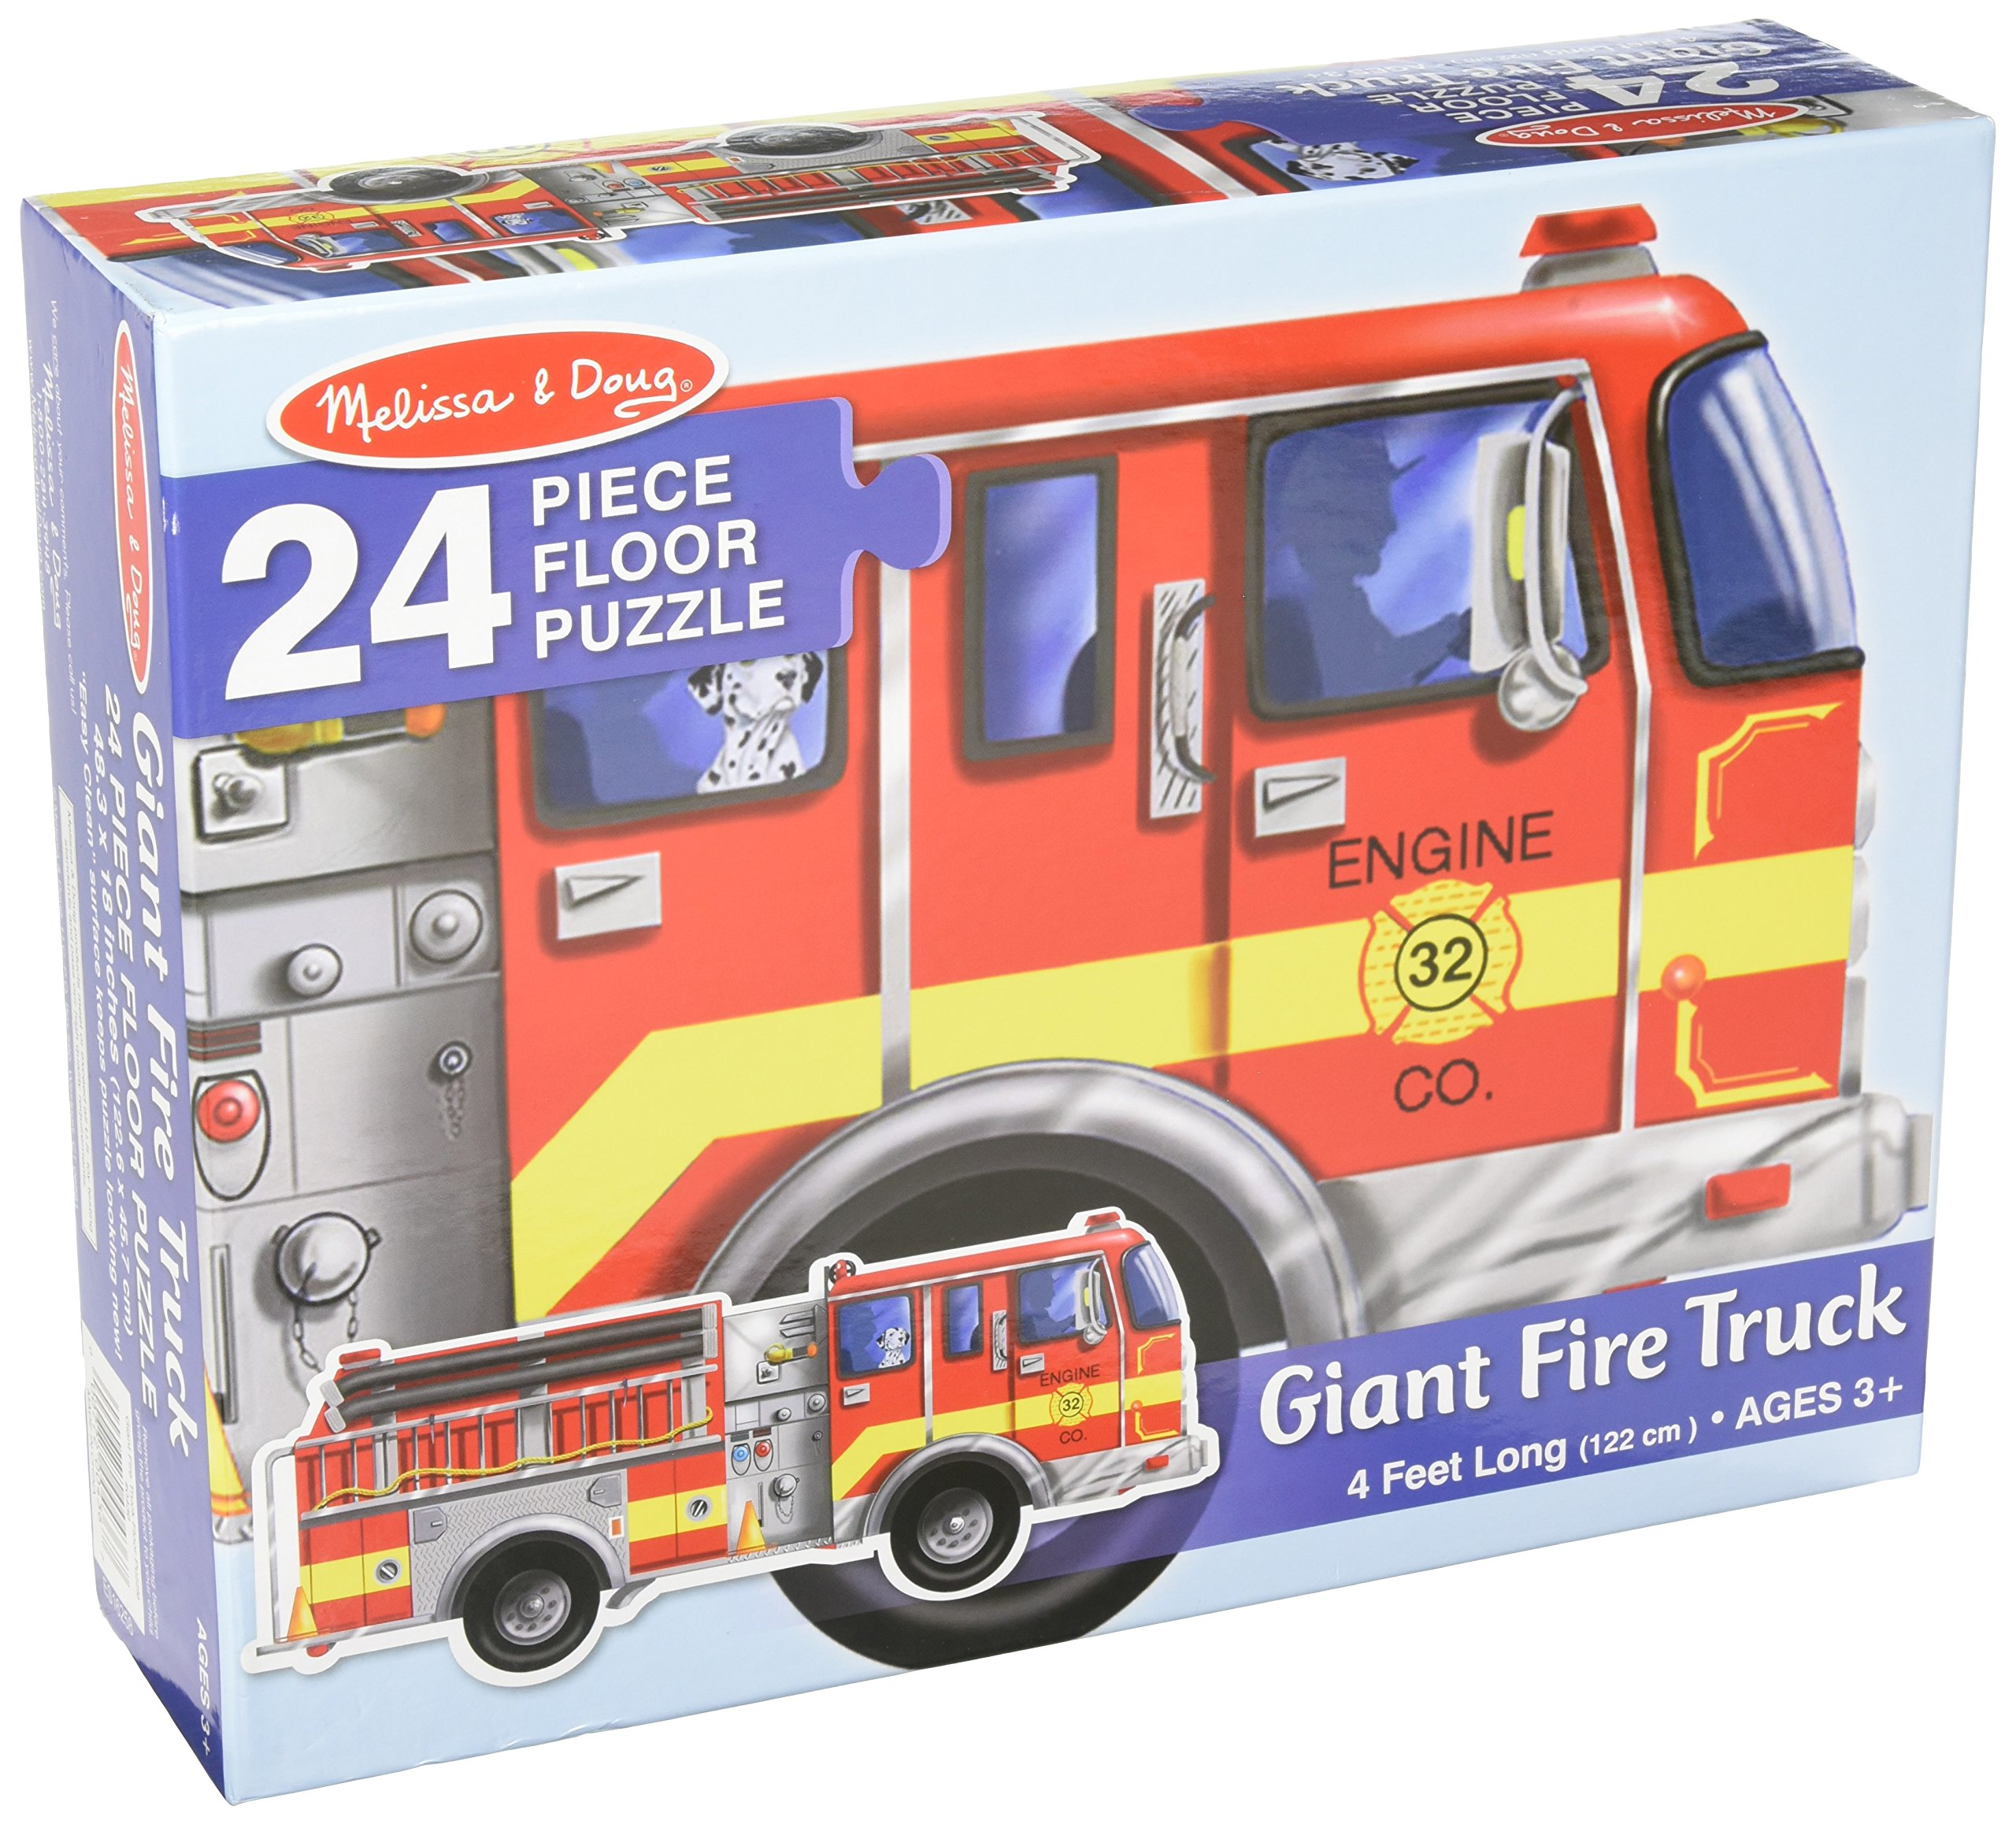 MELISSA & DOUG FLOOR PUZZLE GIANT FIRE TRUCK, 24piece (4Feet long)